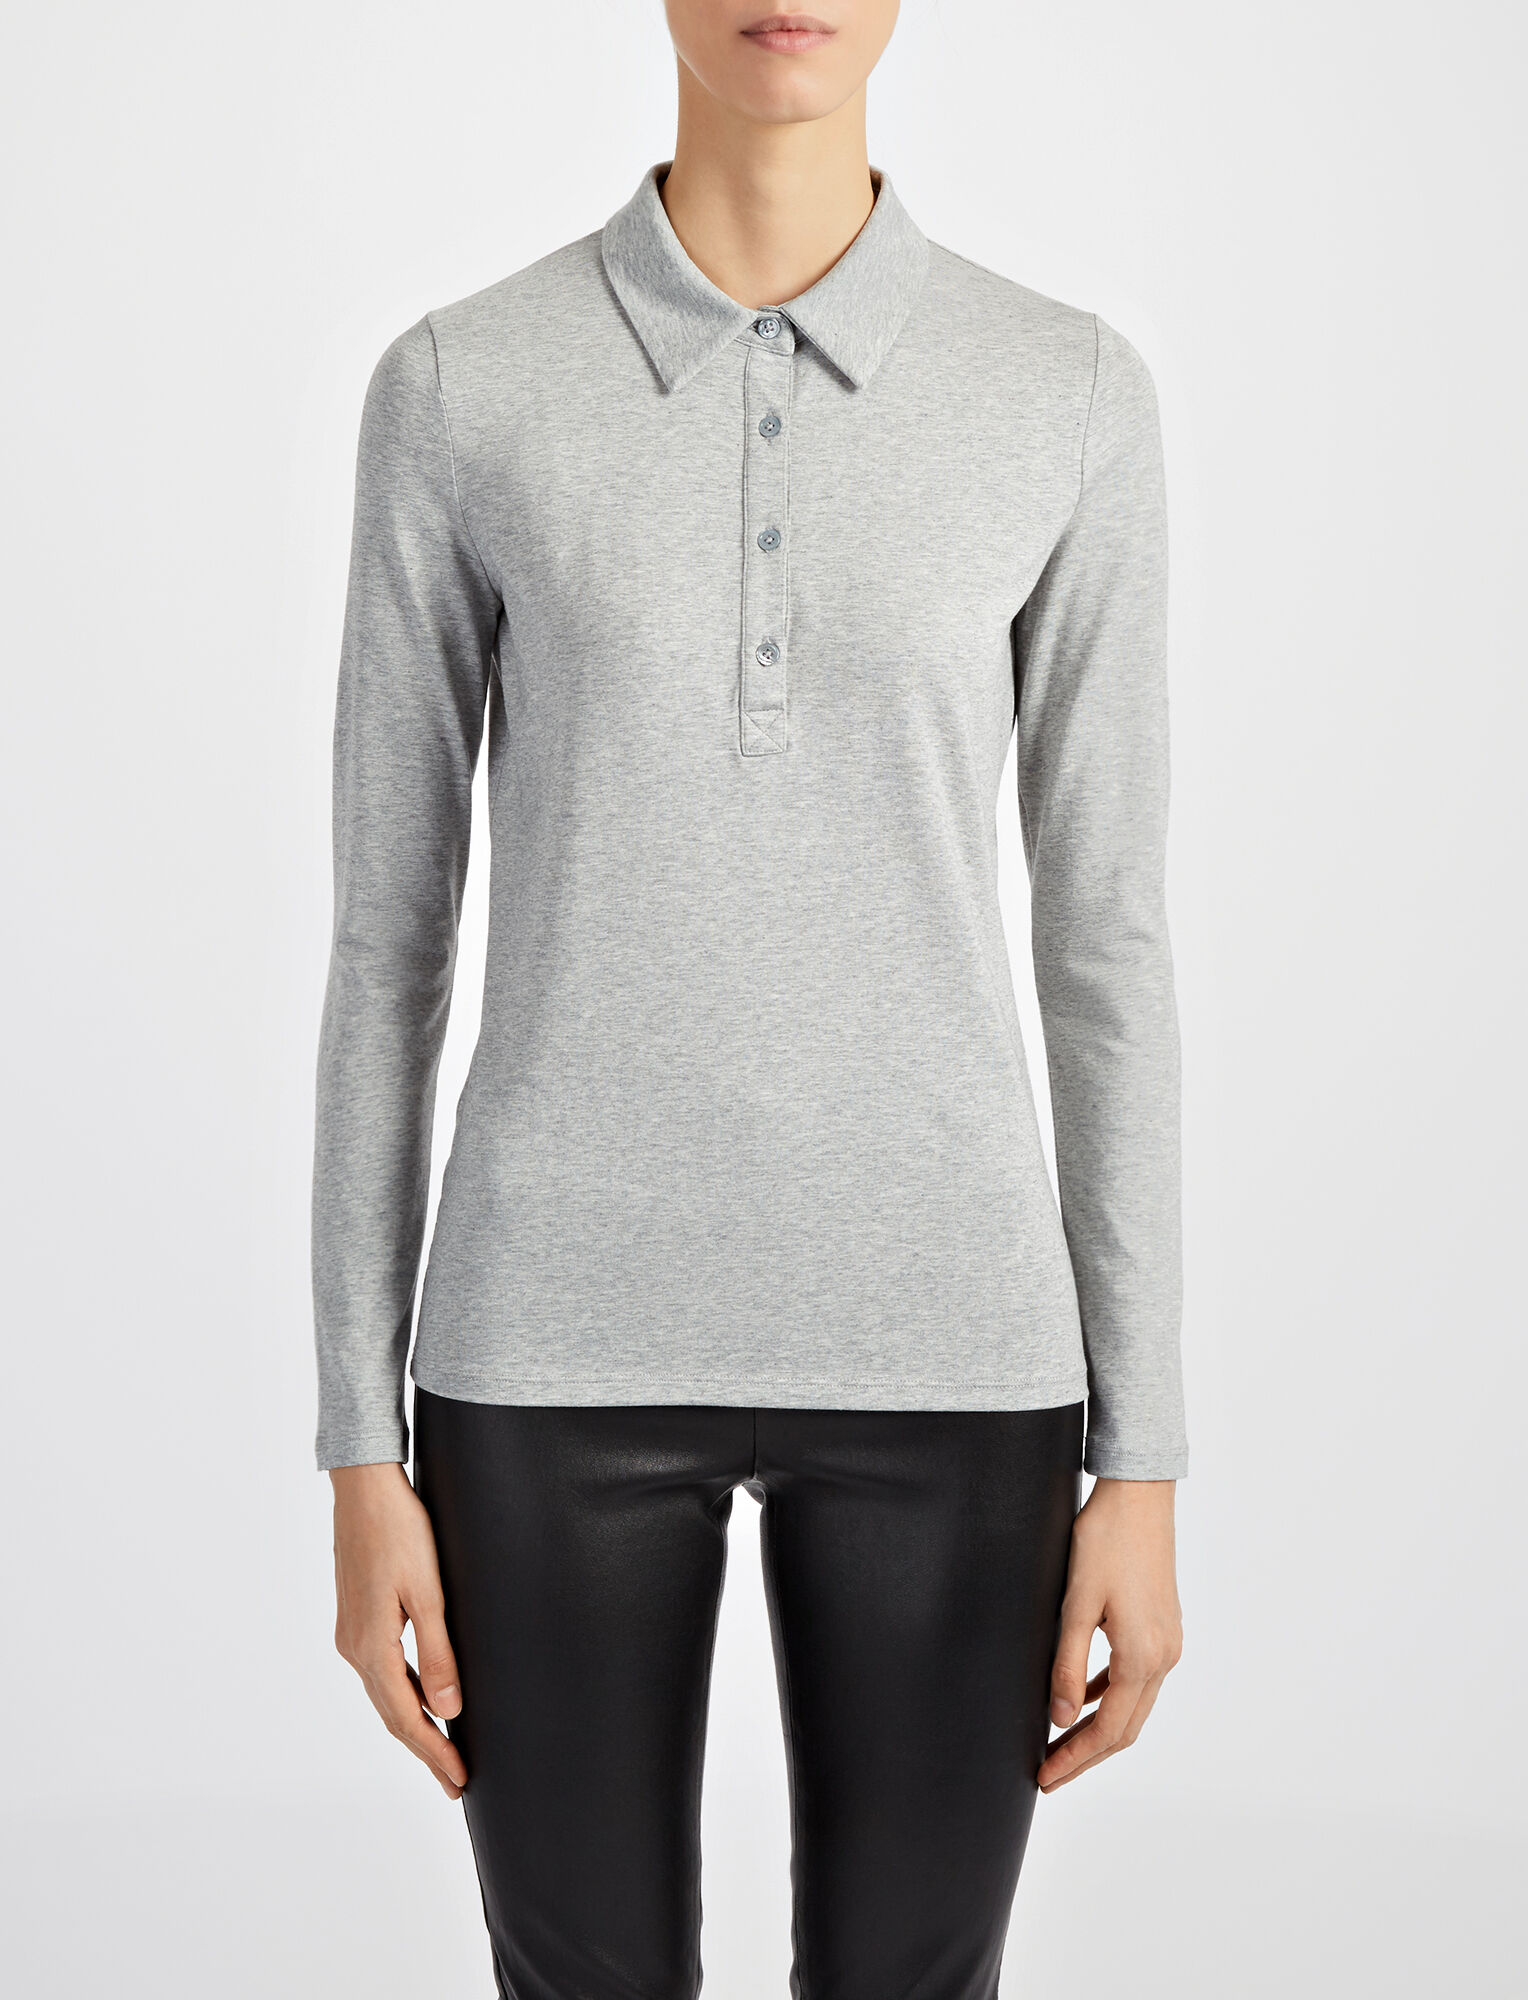 Joseph, Cotton Lyocell Stretch Polo, in GREY CHINE